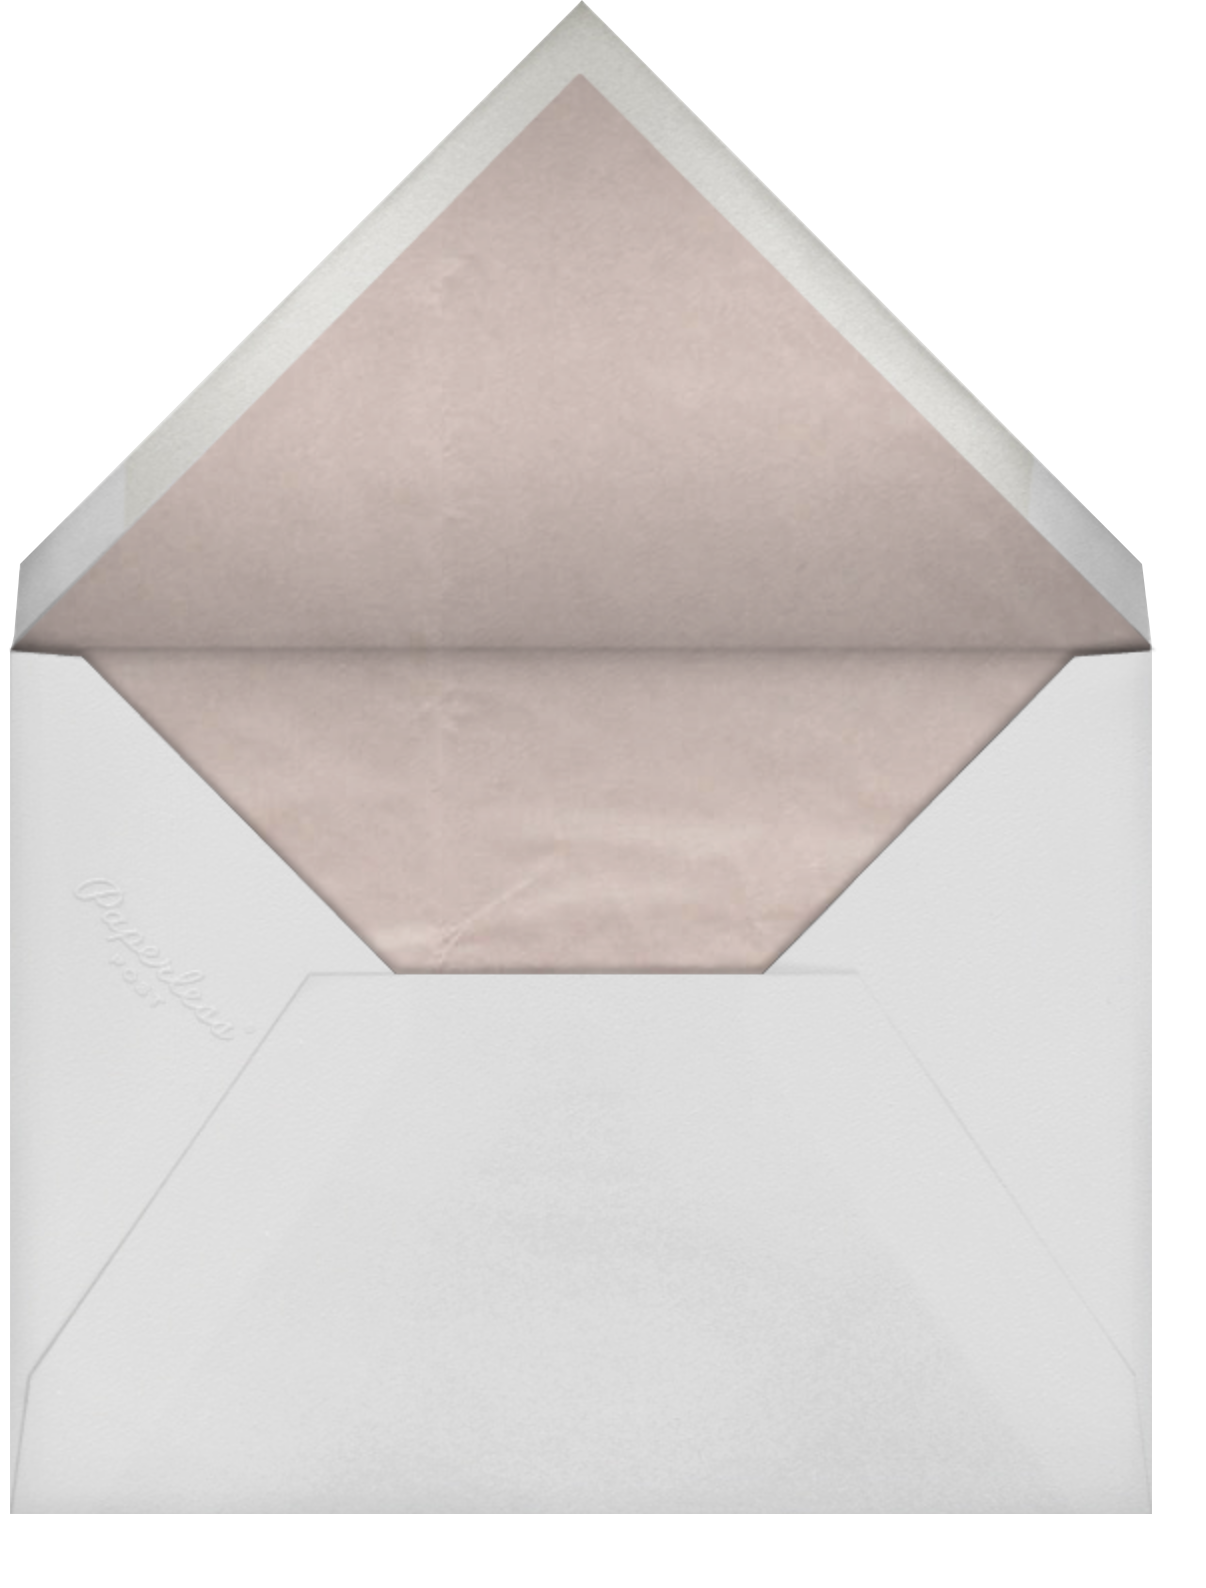 Sincerely - New Date - Paperless Post - Change the date - envelope back